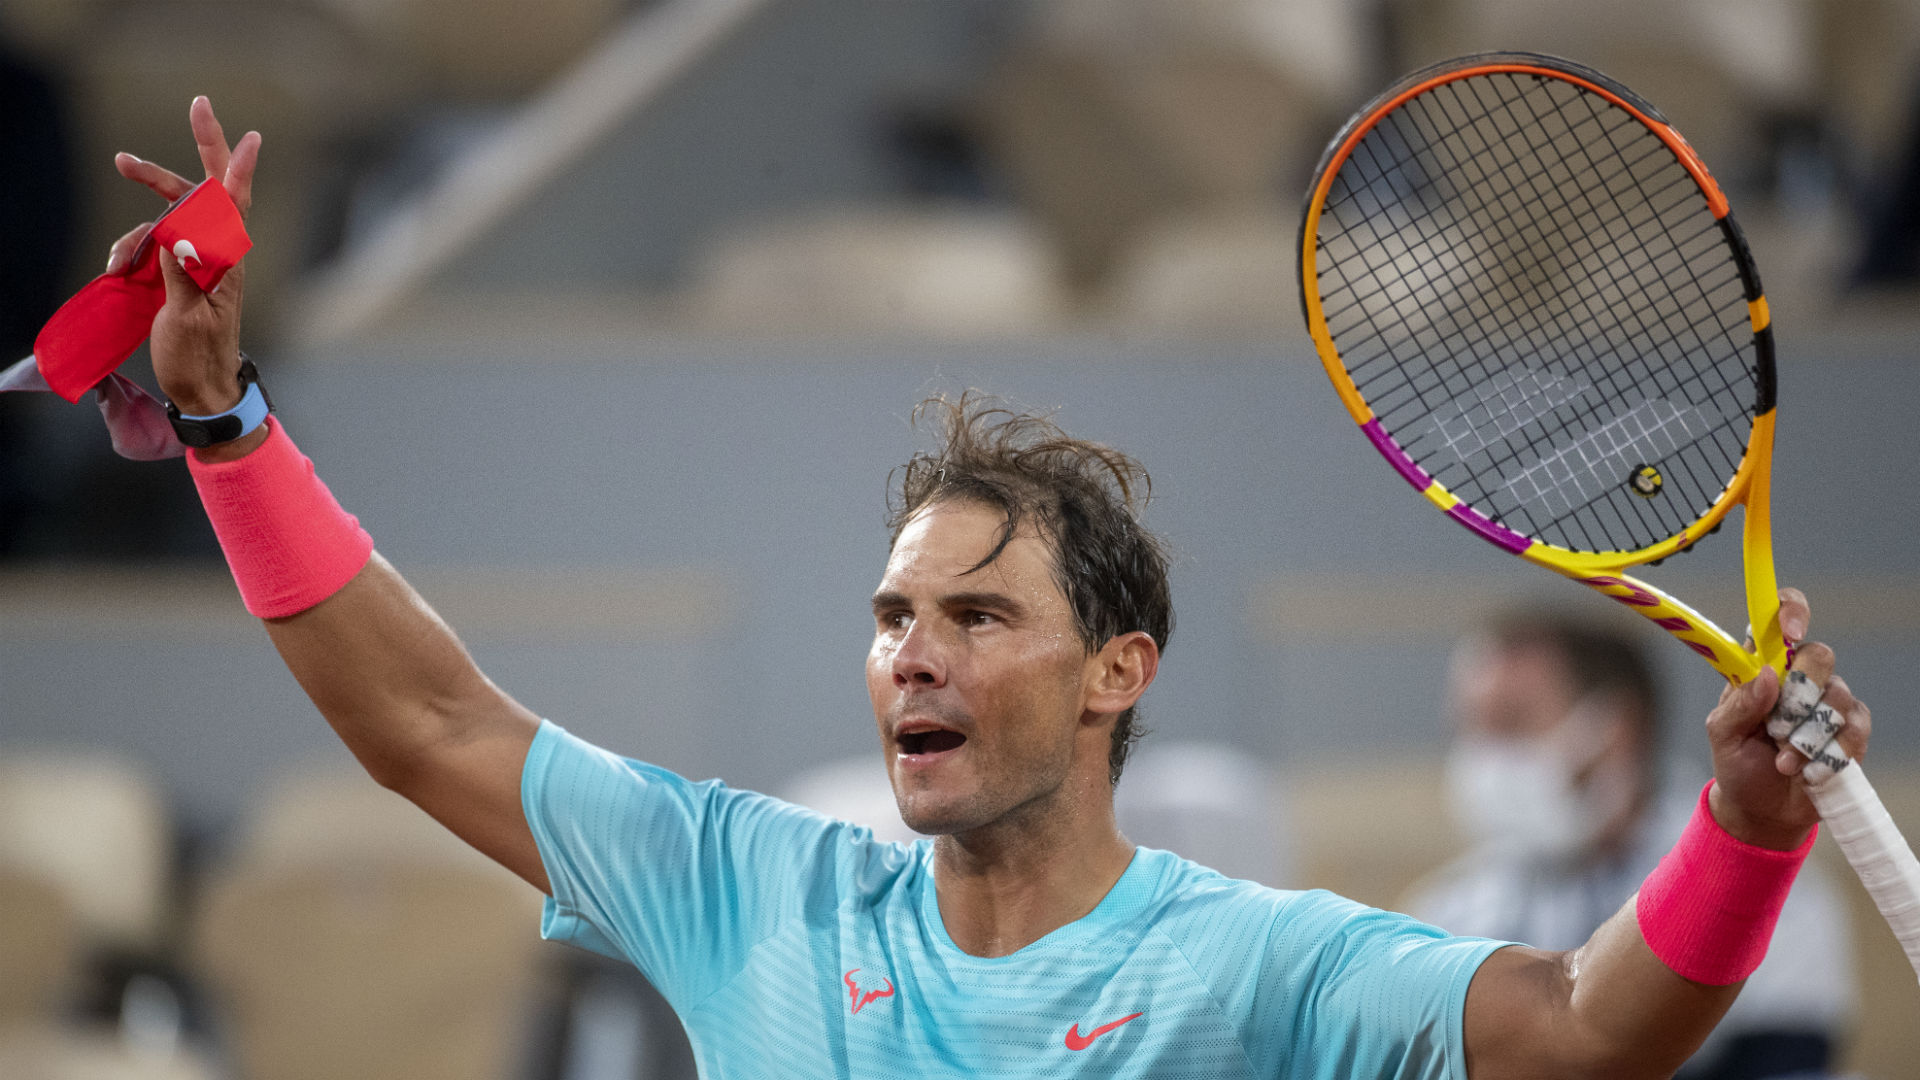 Nadal lands top Spanish honour after Roland Garros triumph, joining Ballesteros, Di Stefano and Xavi